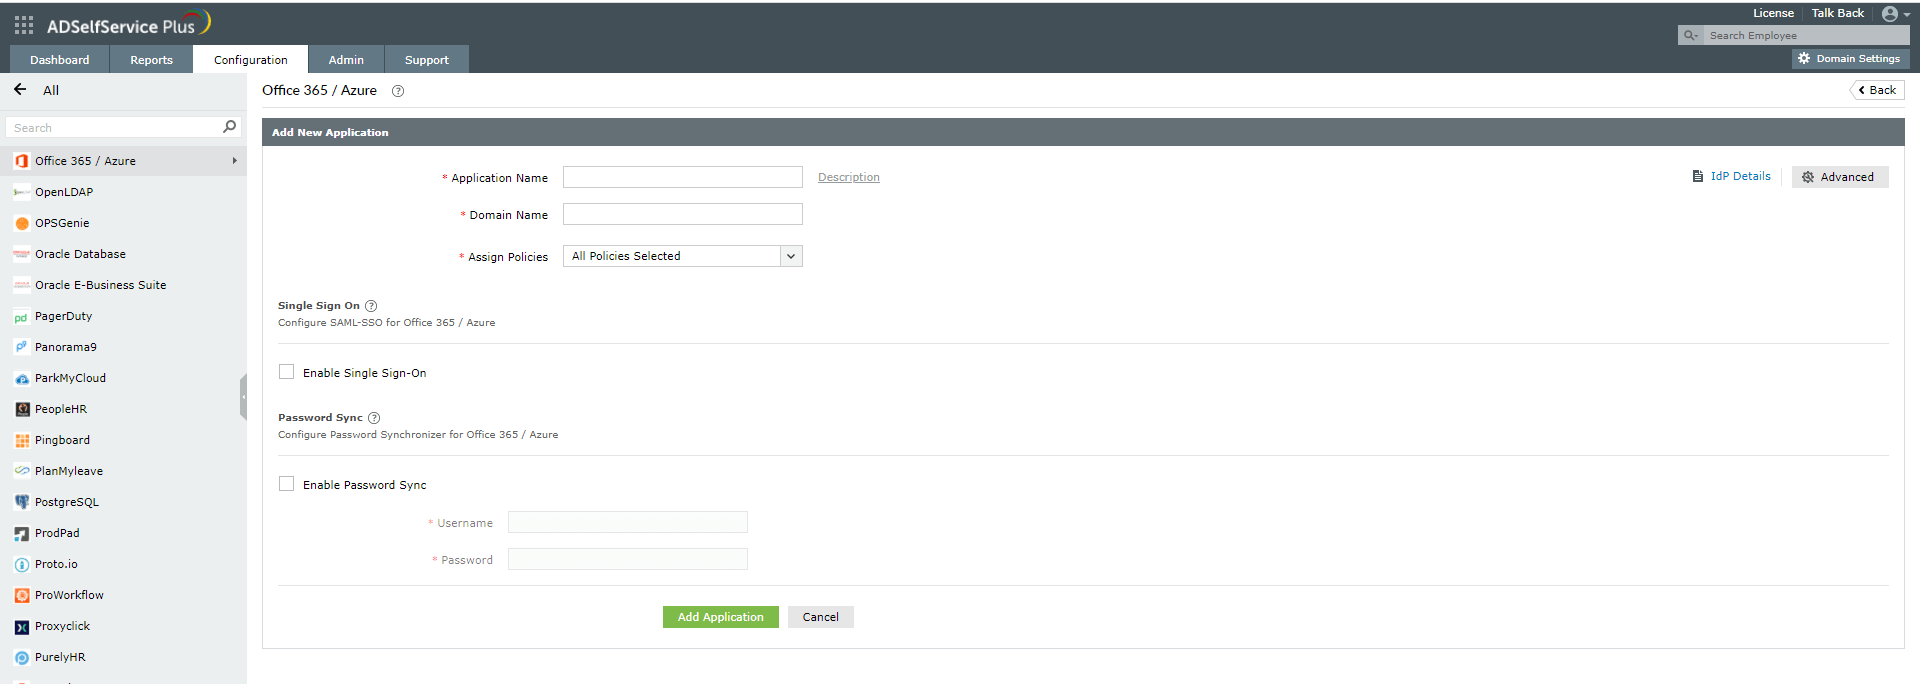 AD to Azure AD password sync configuration